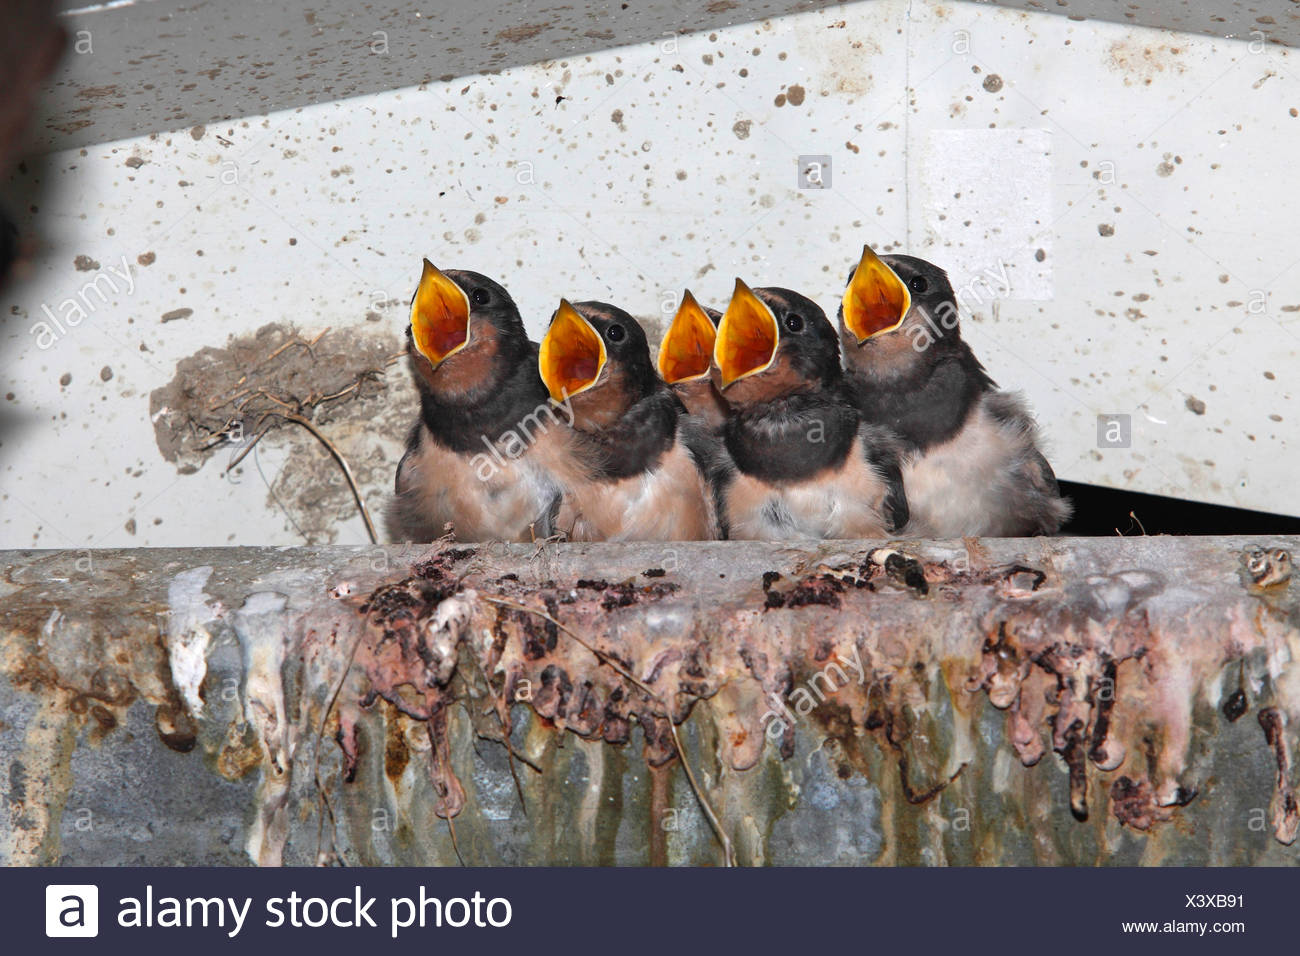 barn swallow (Hirundo rustica), young birds in the nest looking for the adult bird, that brings food, Netherlands, Flevoland - Stock Image